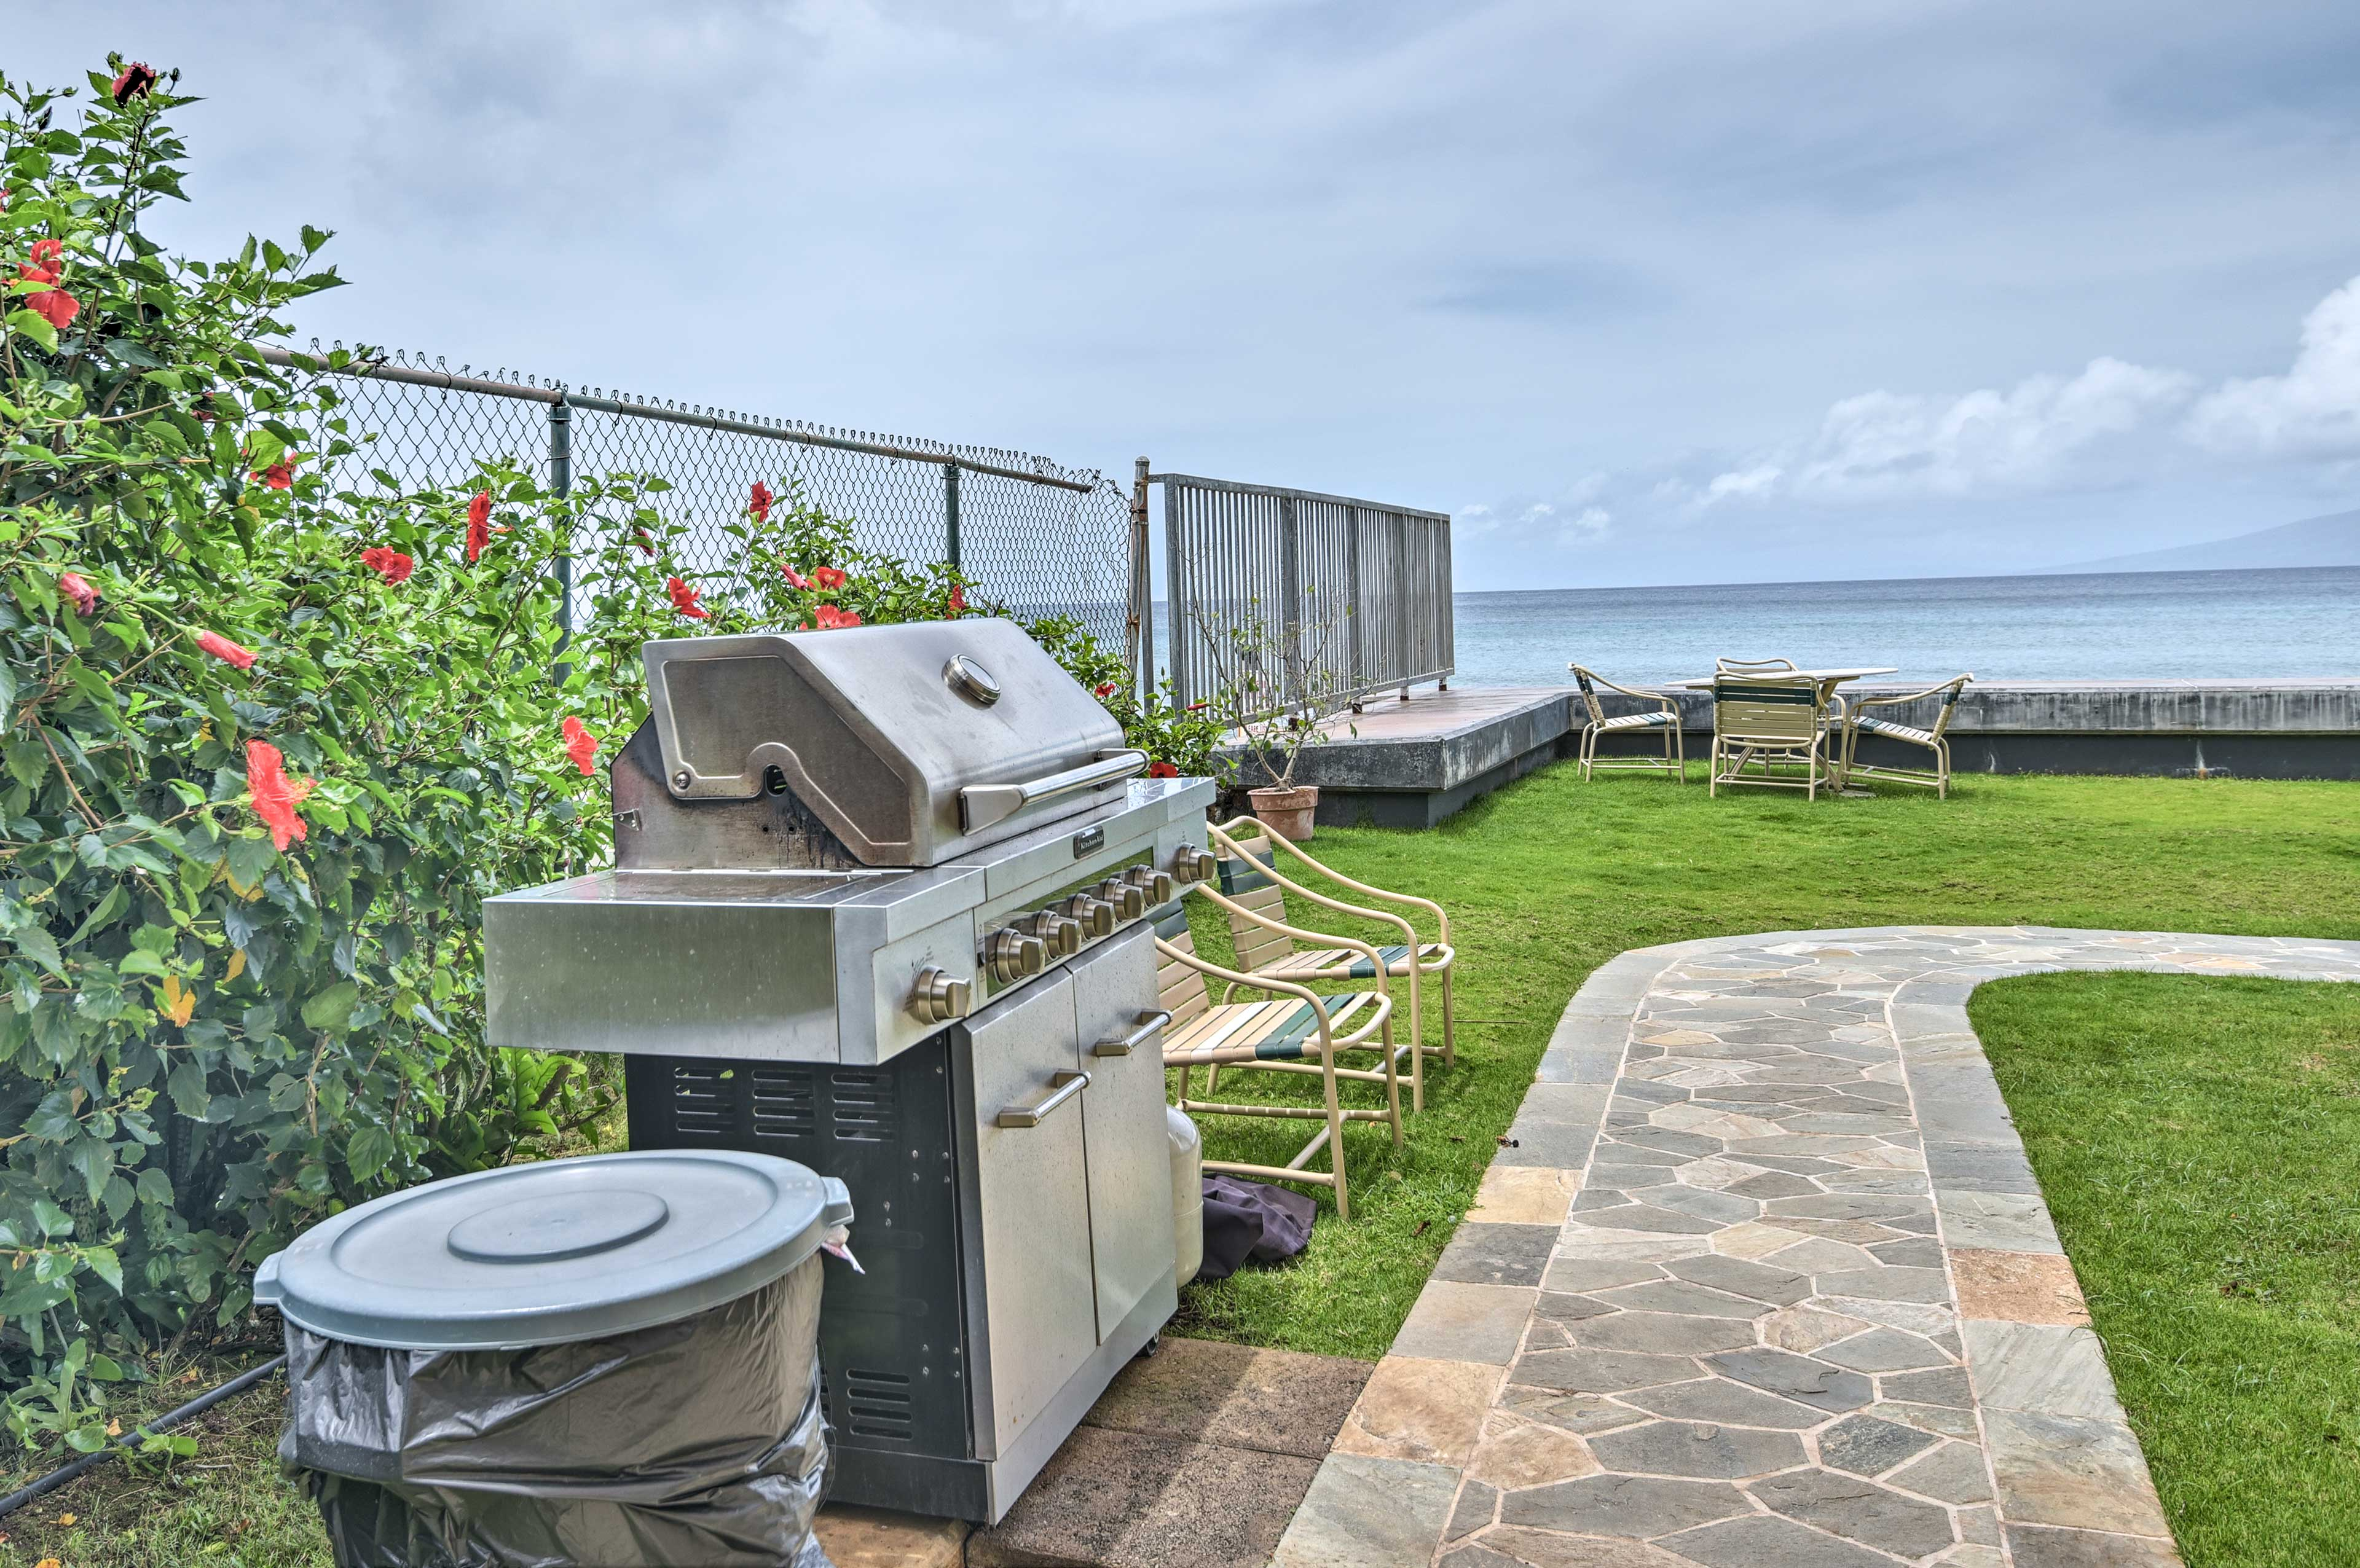 Use the gas grill to BBQ dinner and eat at the outdoor chairs by the sea.